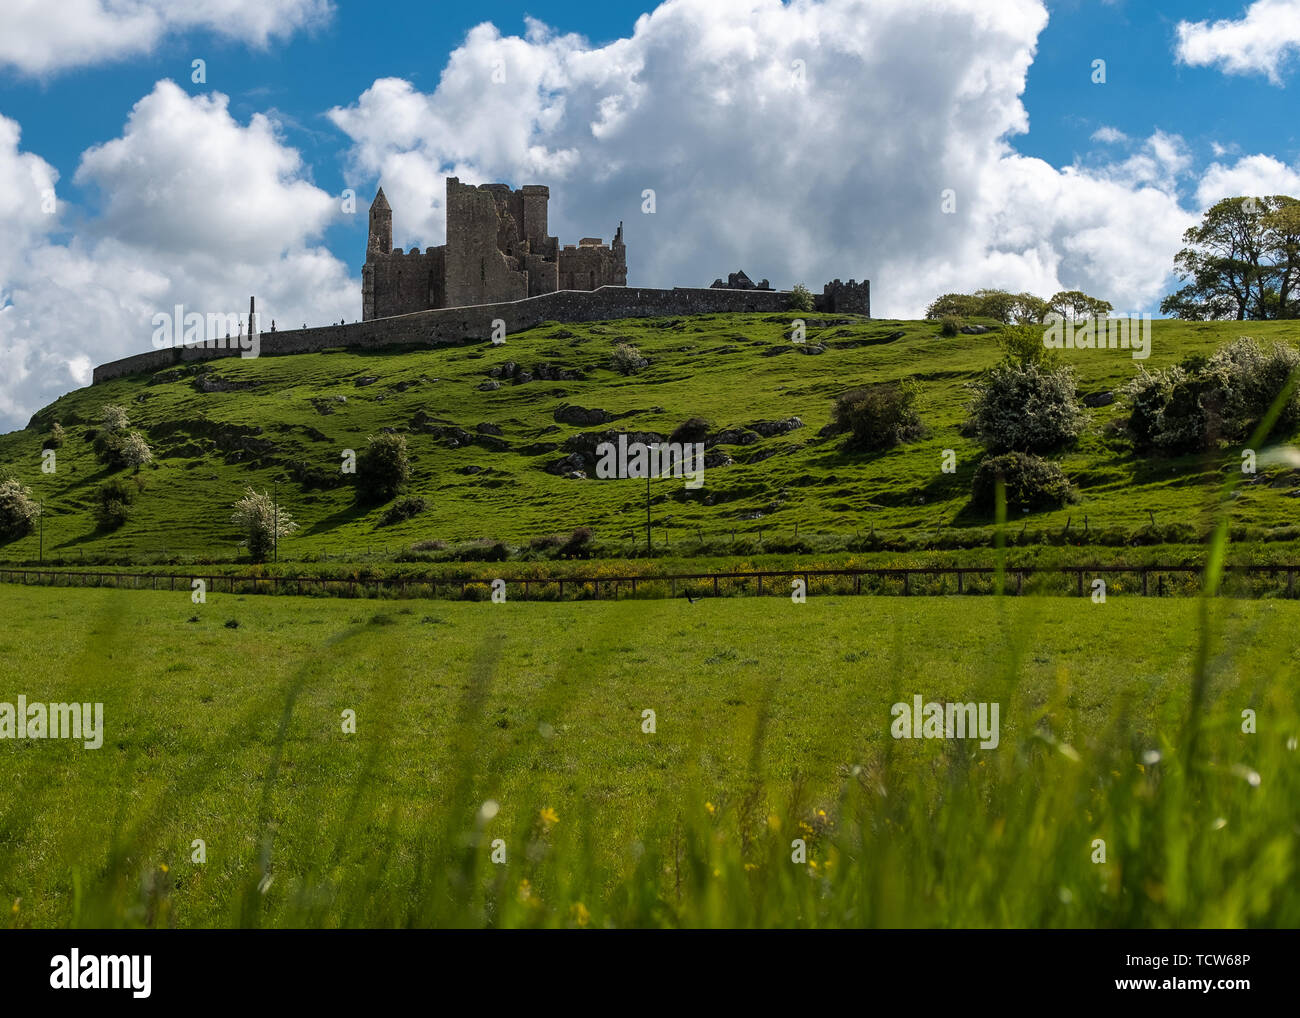 A view across green fields to the magnificent Rock of Cashel and the stone fortress and abbey, against a bright blue sky and fluffy white clouds, nobo - Stock Image